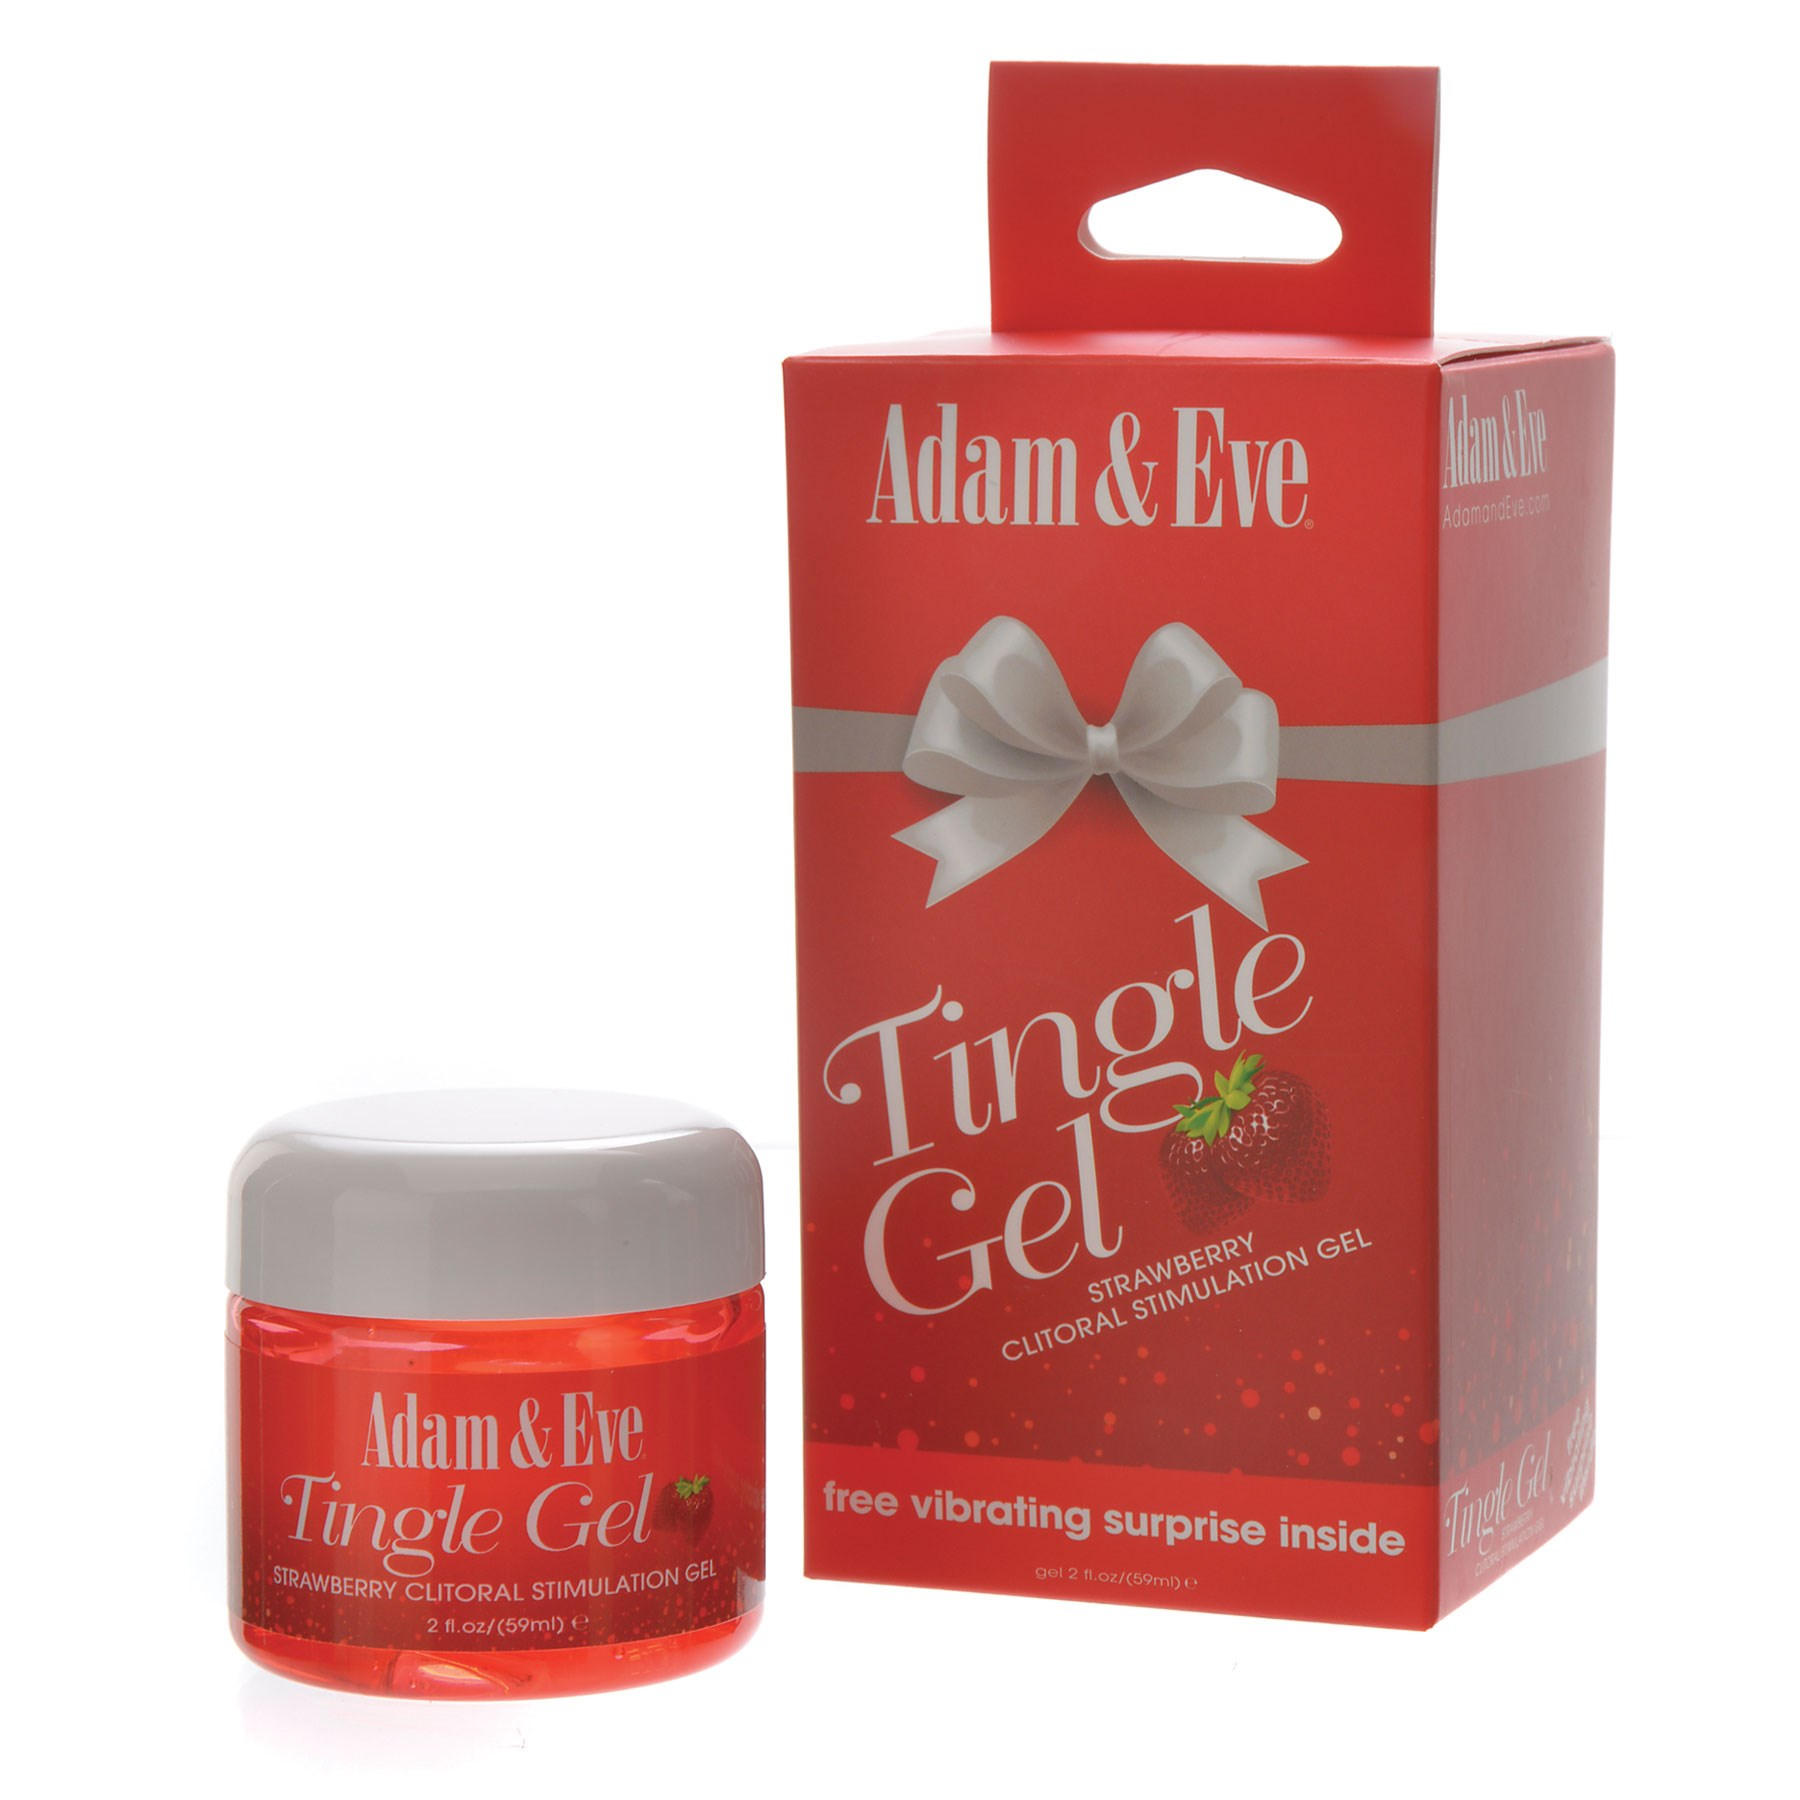 Adam & Eve Tingle Gel and Gift